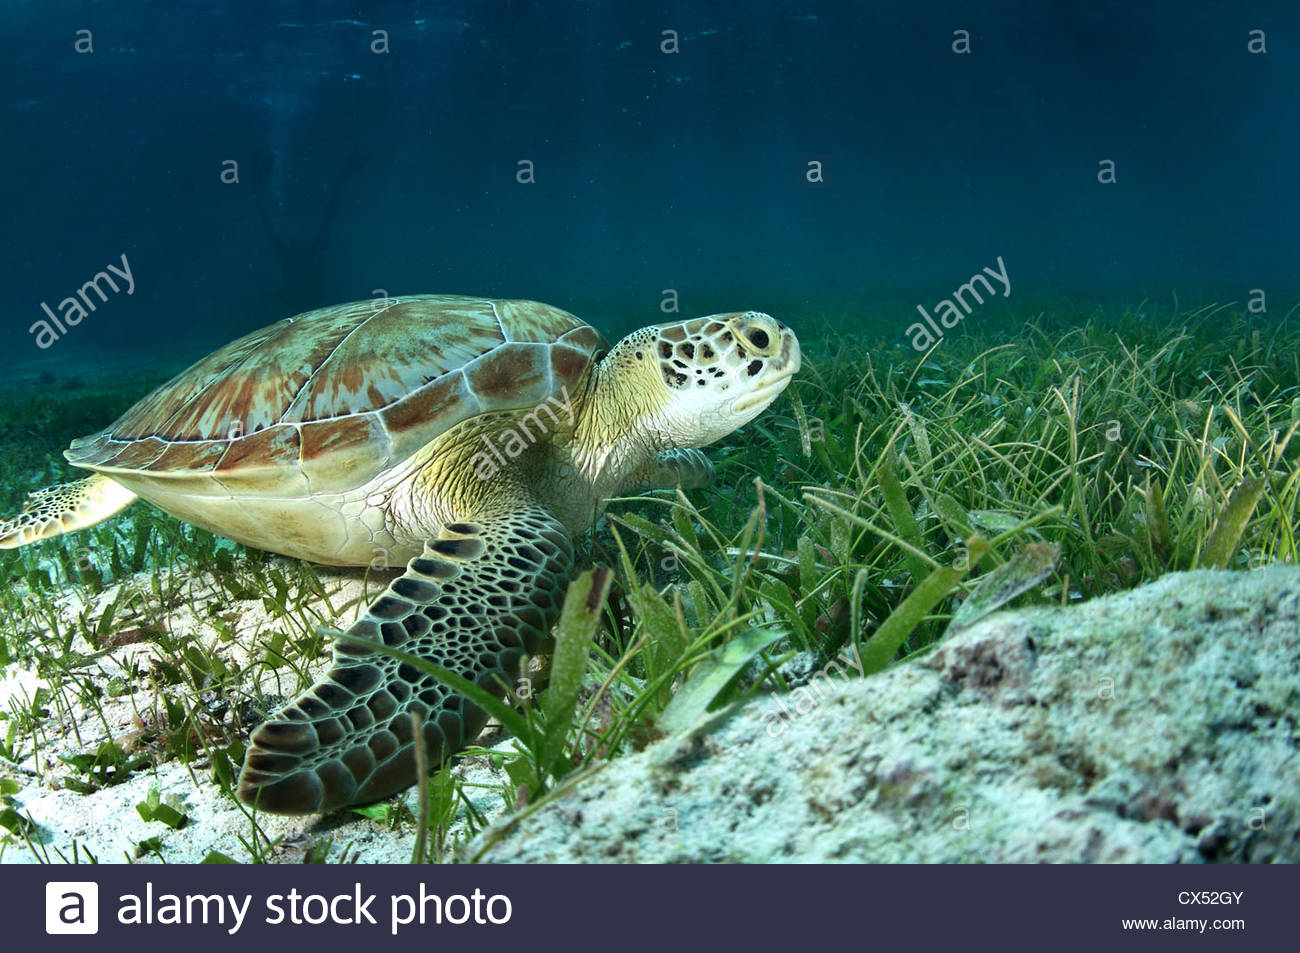 Green sea turtle, Ambergris Caye, Belize - Stock Image